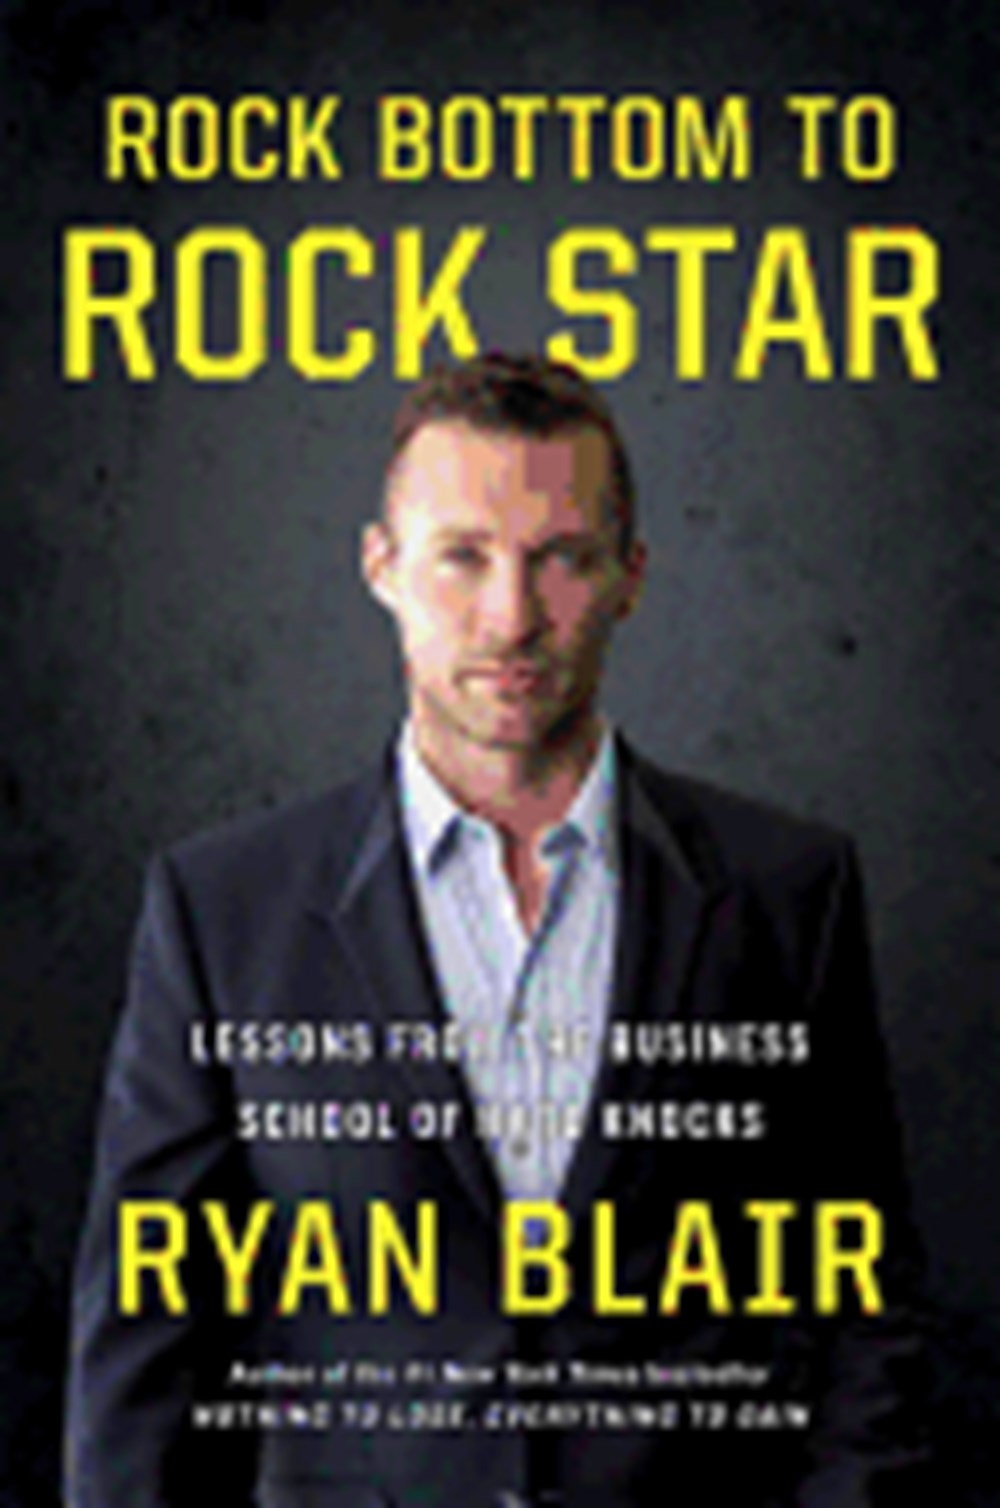 Rock Bottom to Rock Star Lessons from the Business School of Hard Knocks